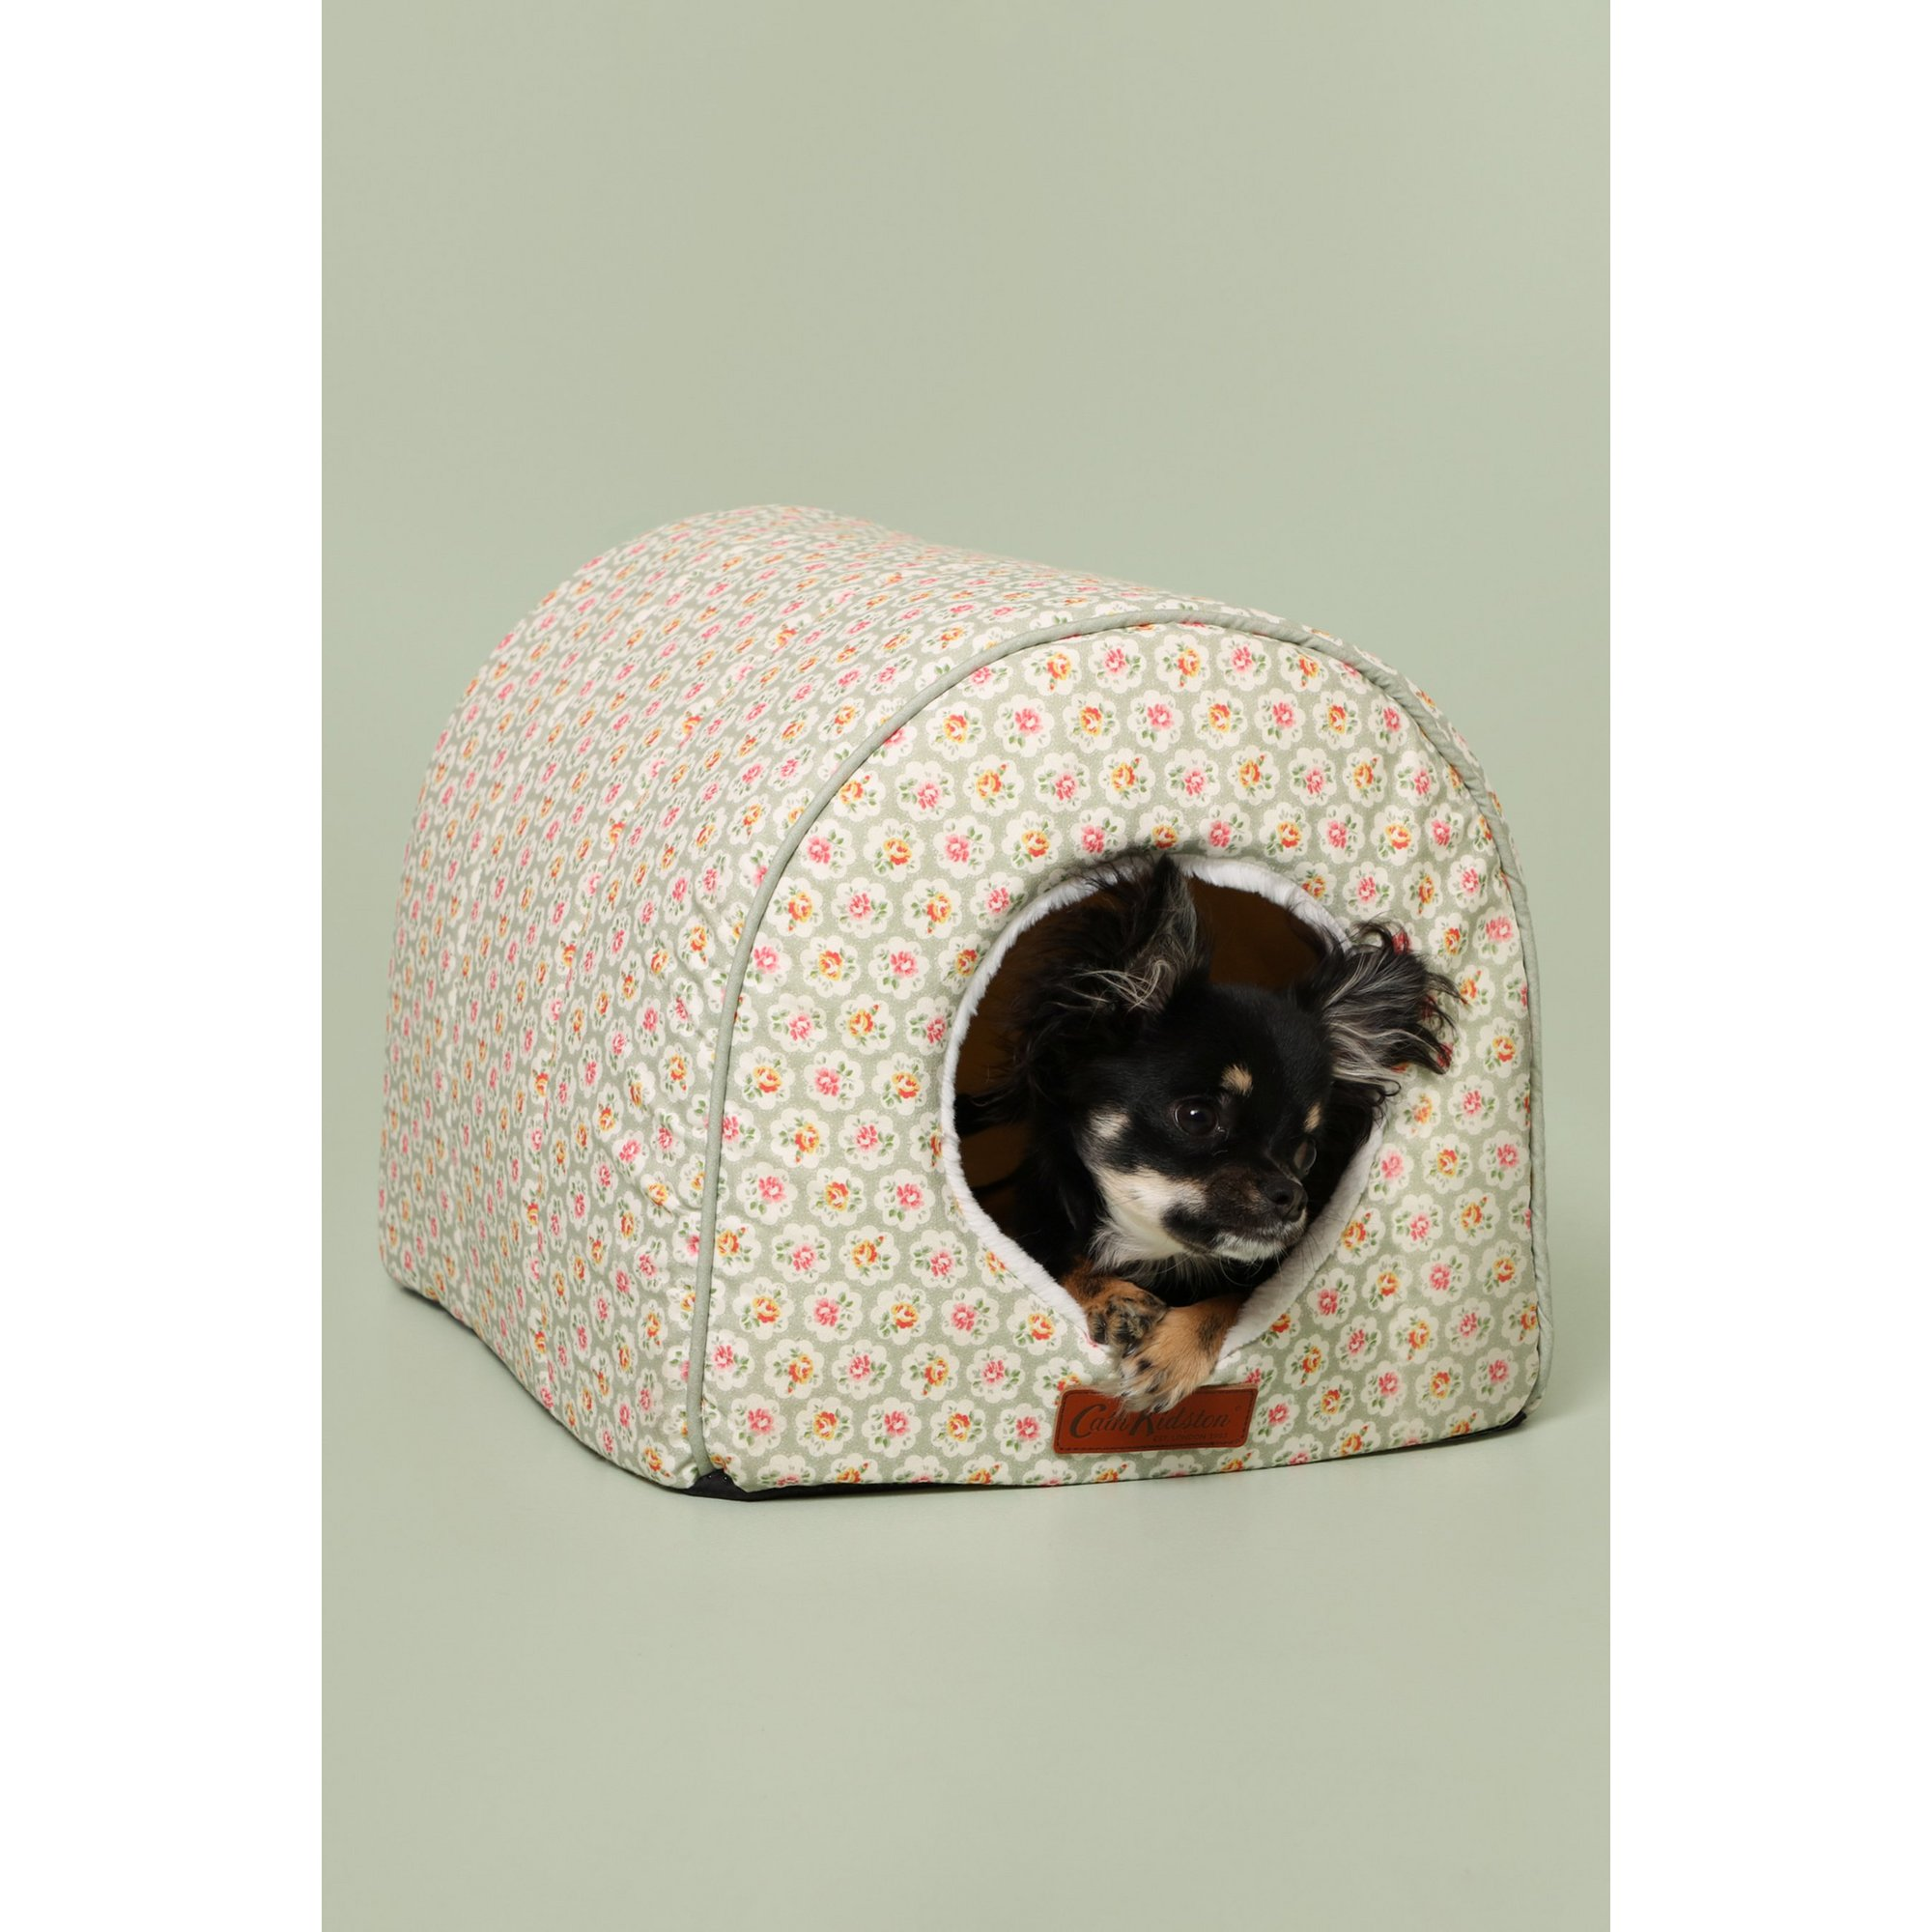 Image of Cath Kidston Provence Rose Igloo Bed with Luxury Comfort Inner